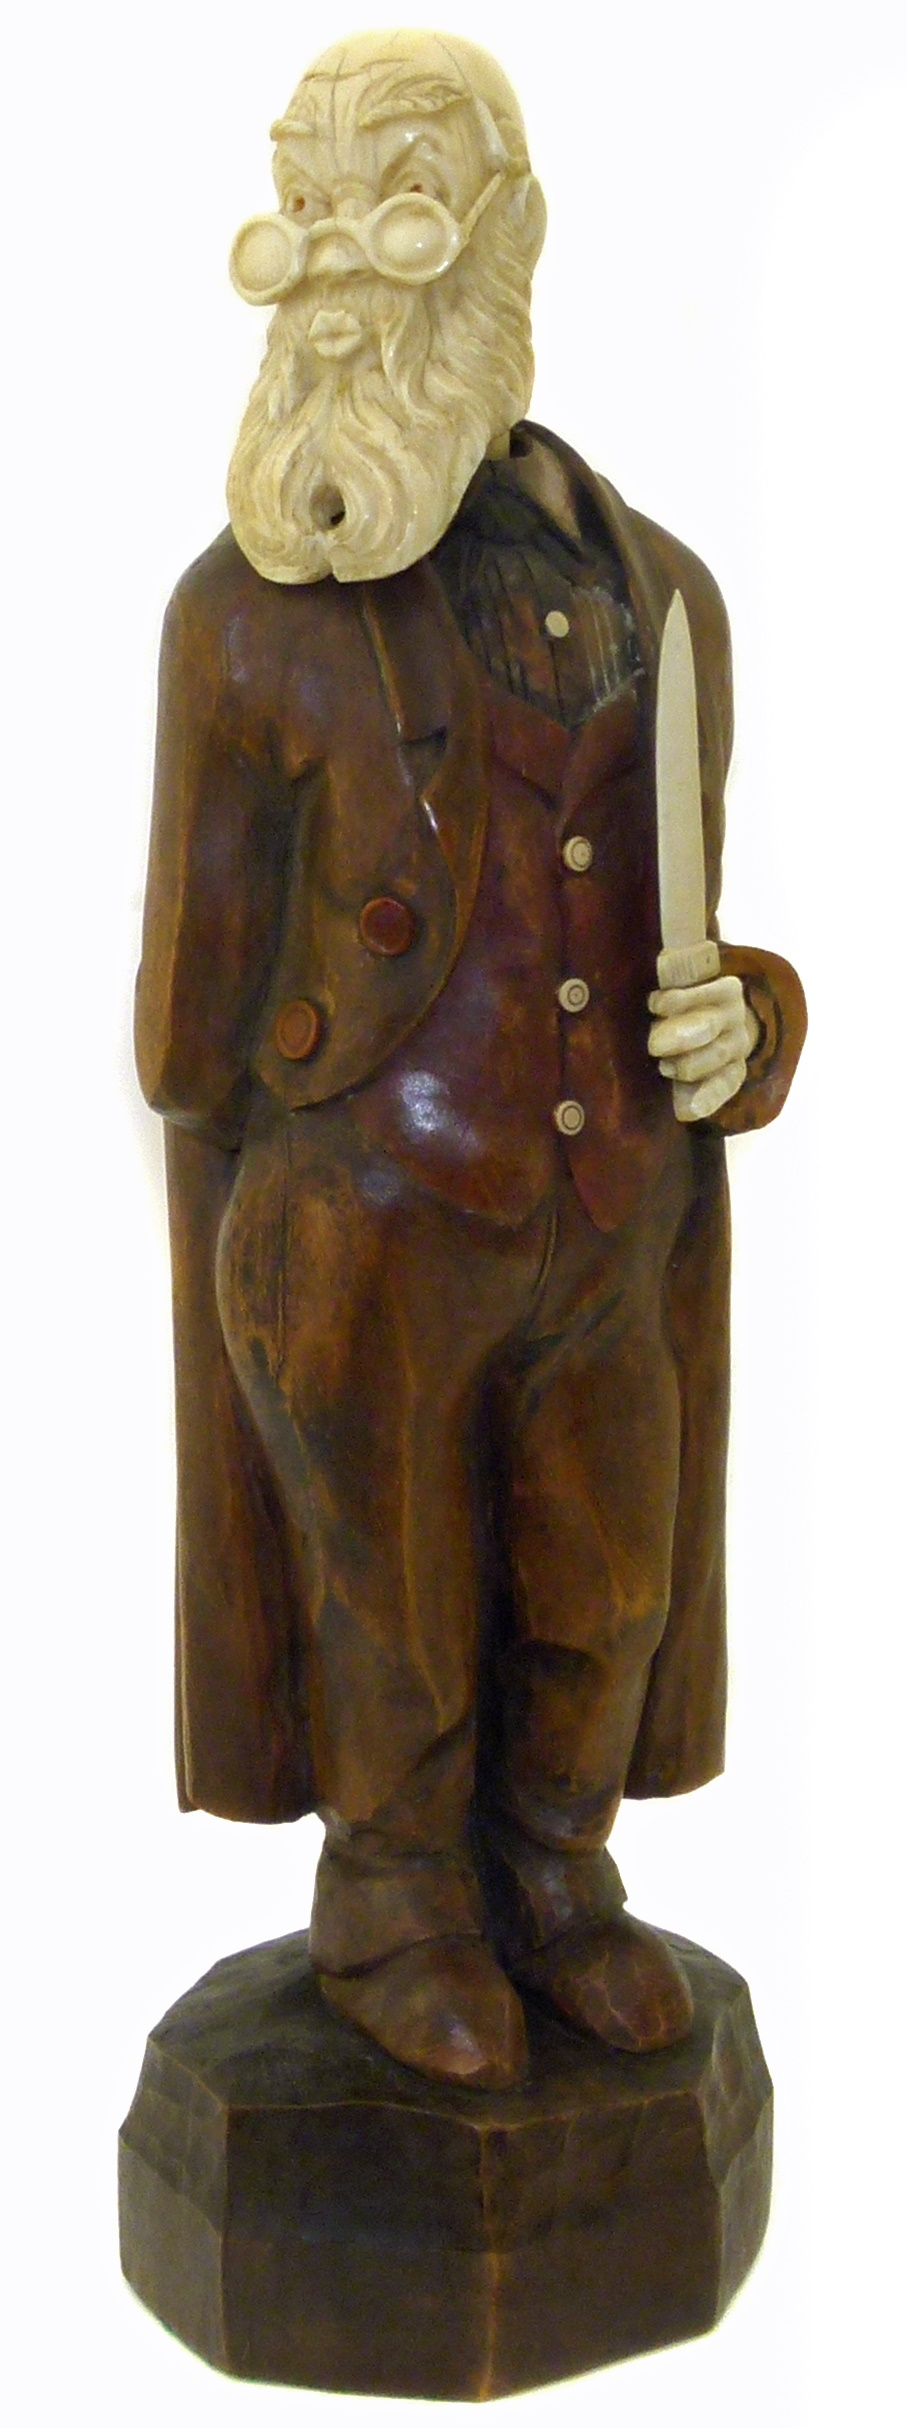 Lot 48 - An early 20th Century German carved wood and ivory automaton, modelled as a whistling gentleman with